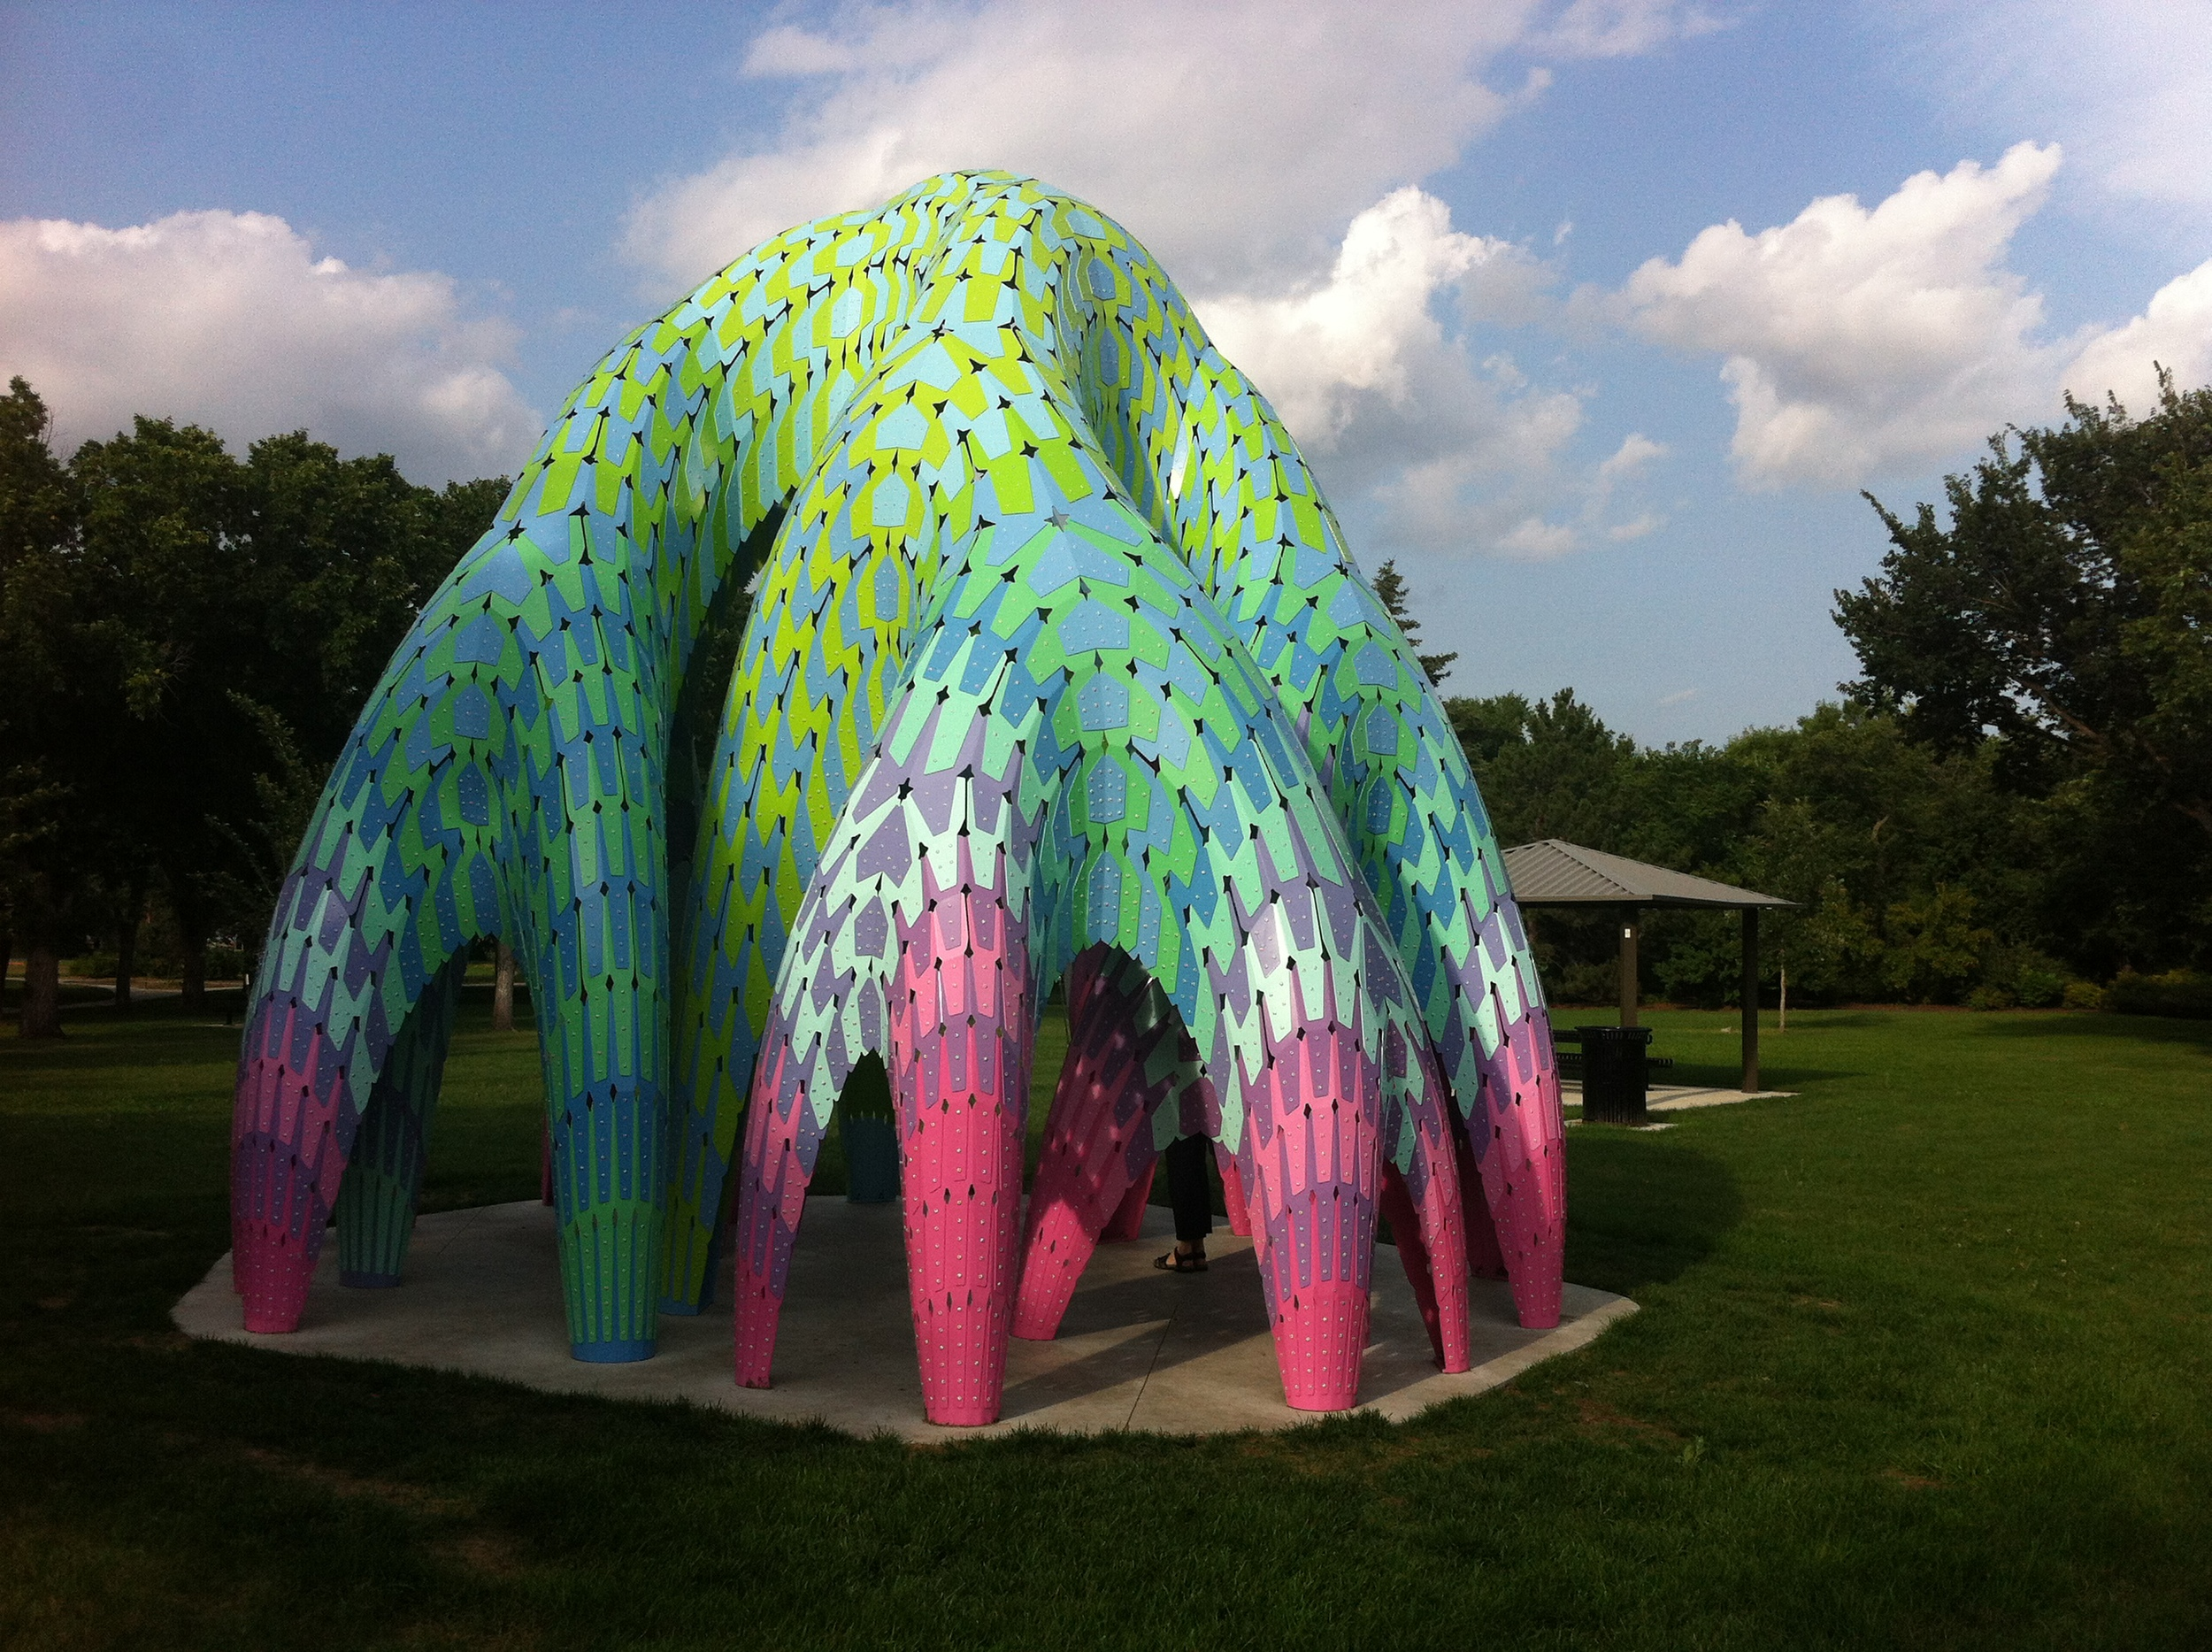 Willows (2014) by Marc Fornes is large and bold enough to capture park visitor's imagination.